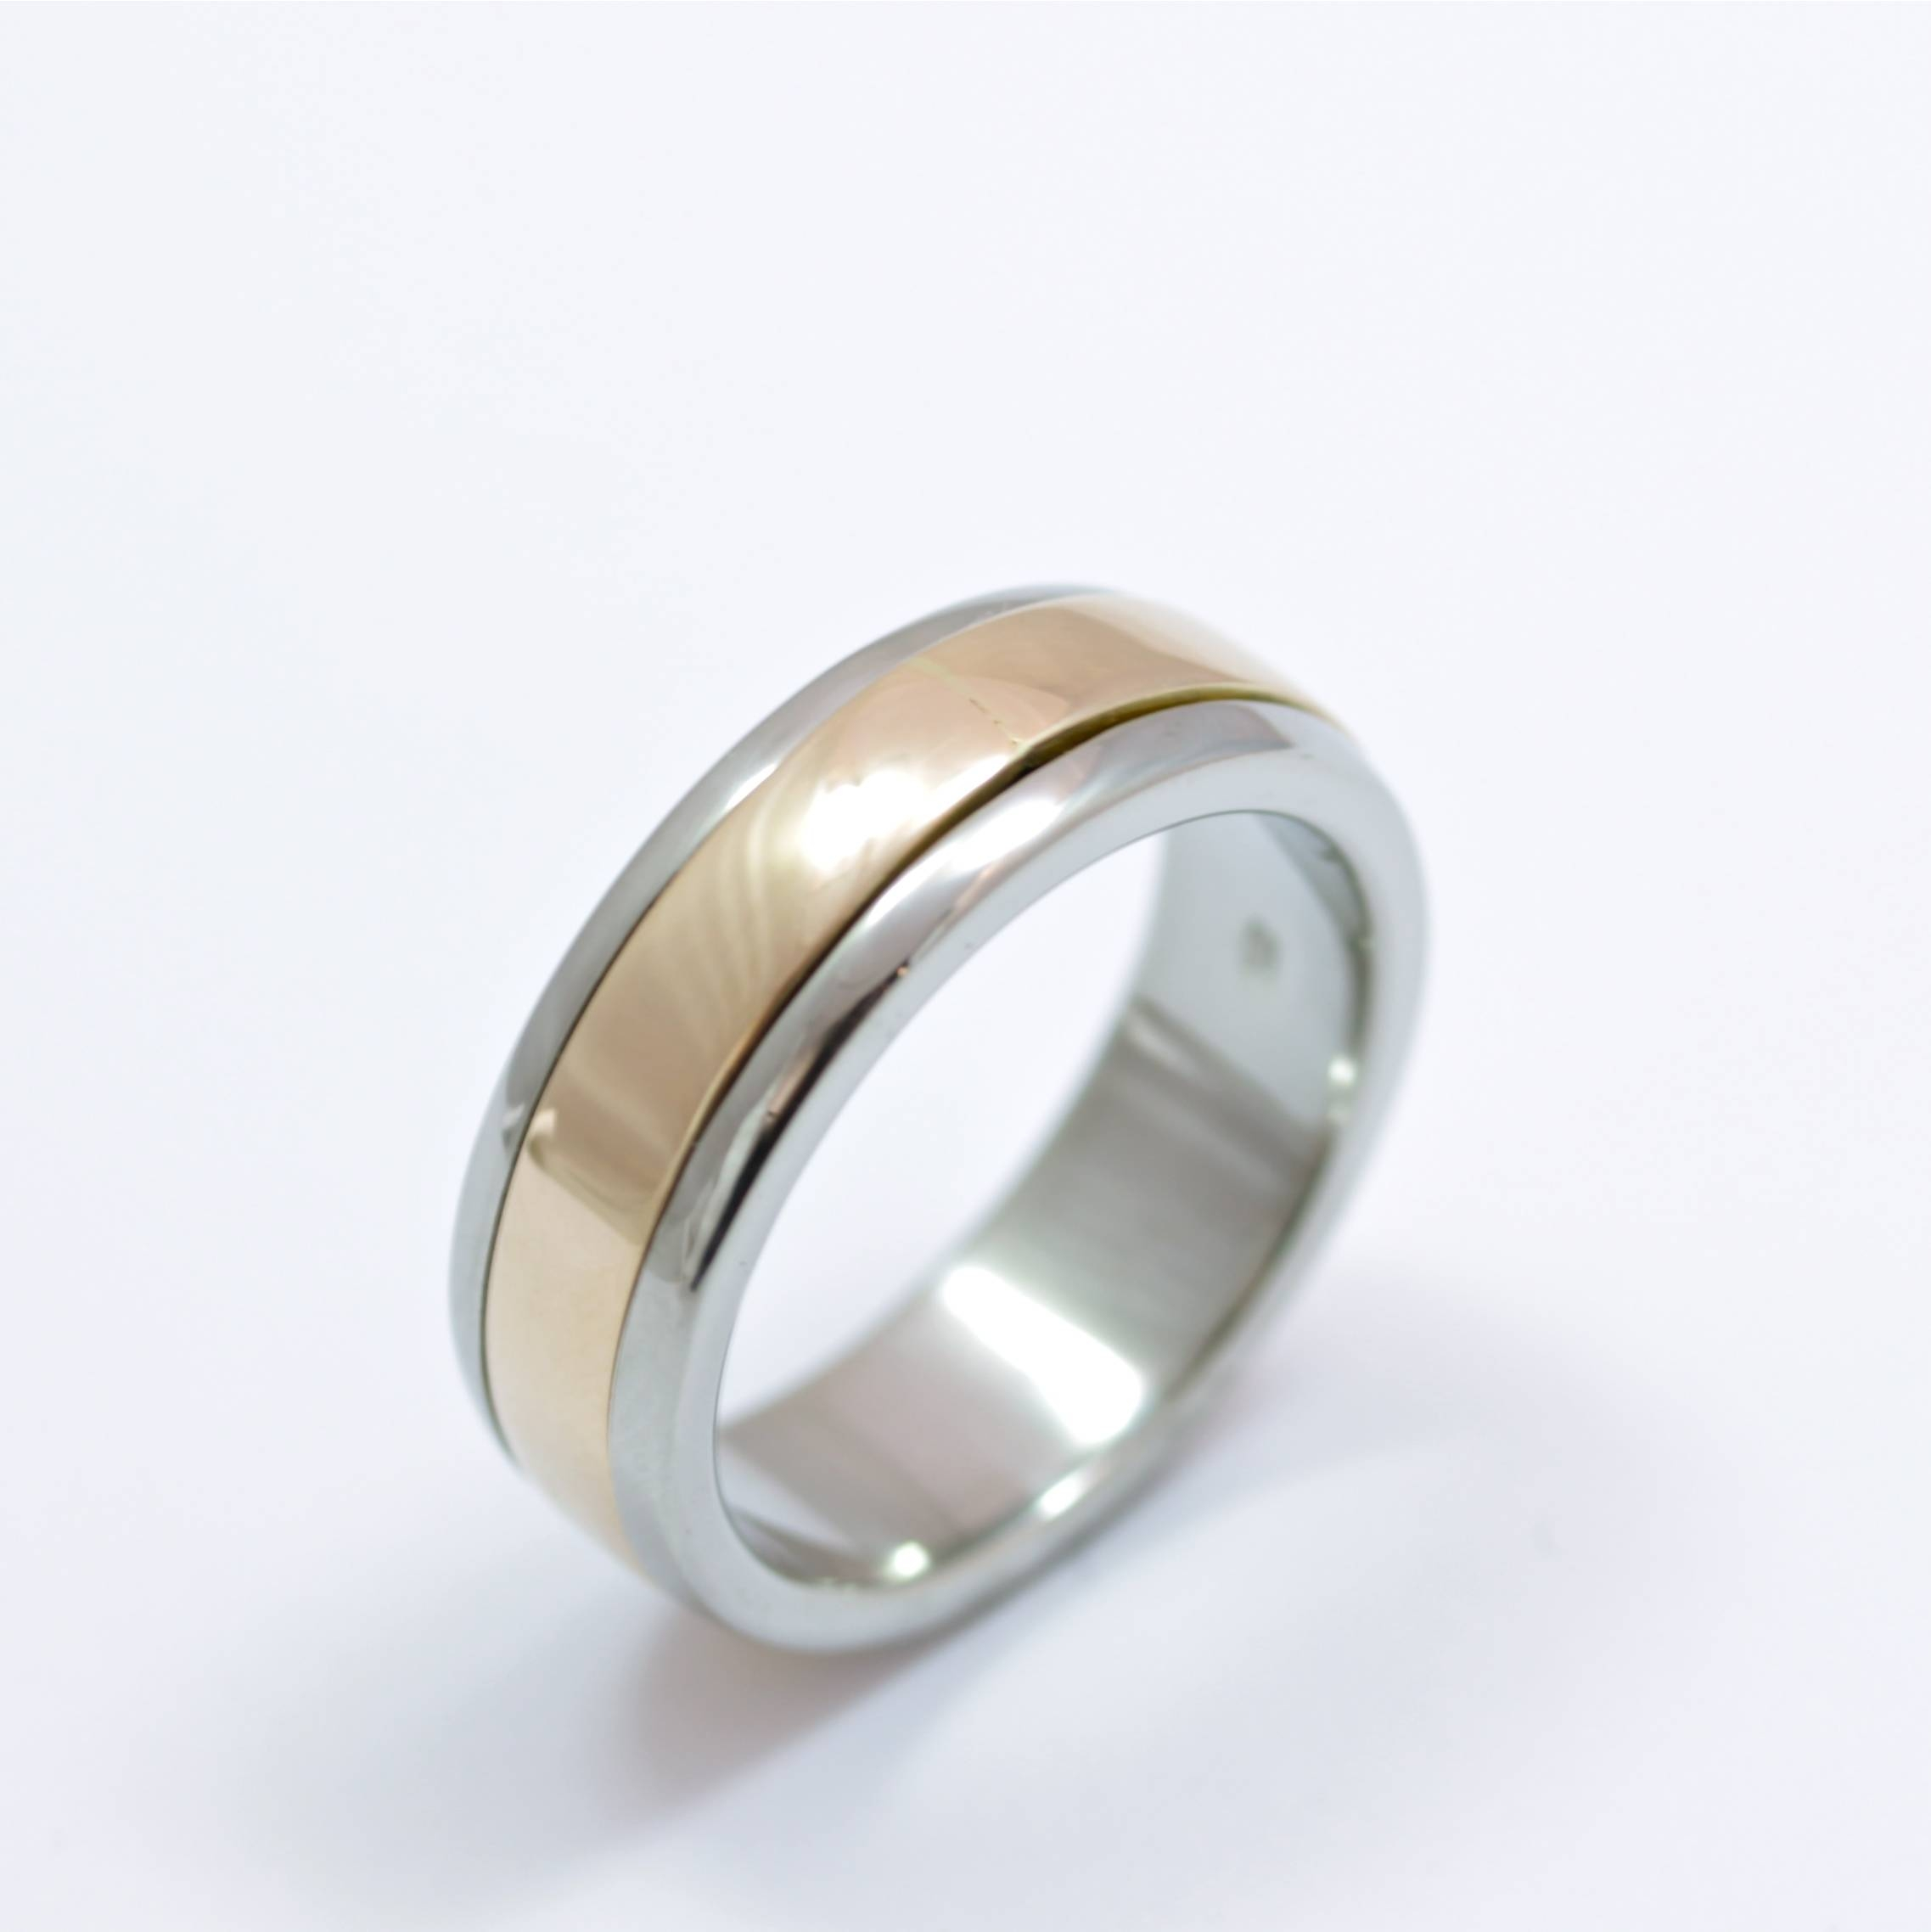 Palladium And 9Ct Rose Gold Men's Wedding Ring Intended For Palladium Wedding Rings (View 7 of 15)